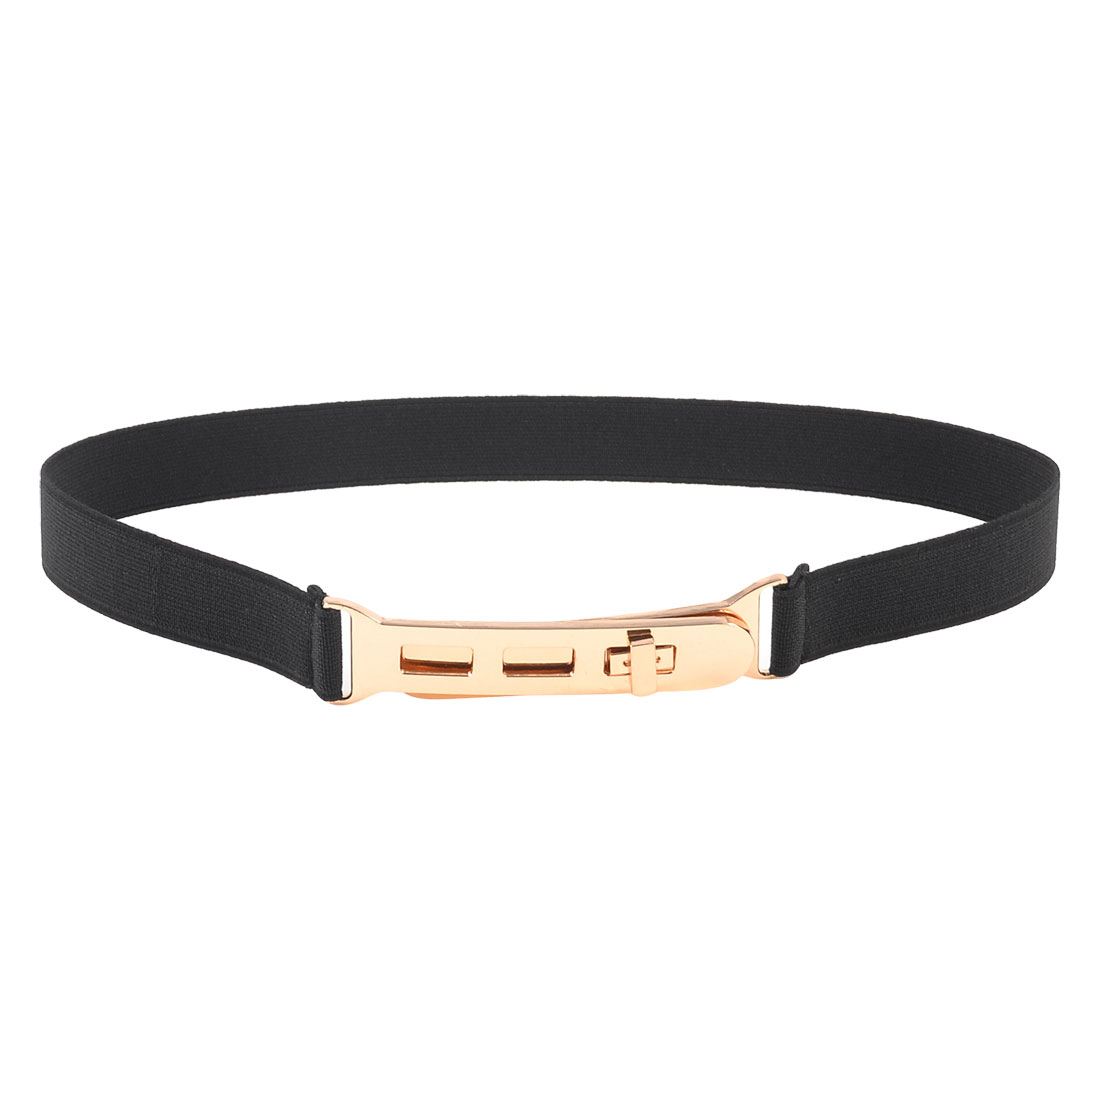 Black Elastic Band Slim Stretch Cinch Belt for Girls Ladies Women